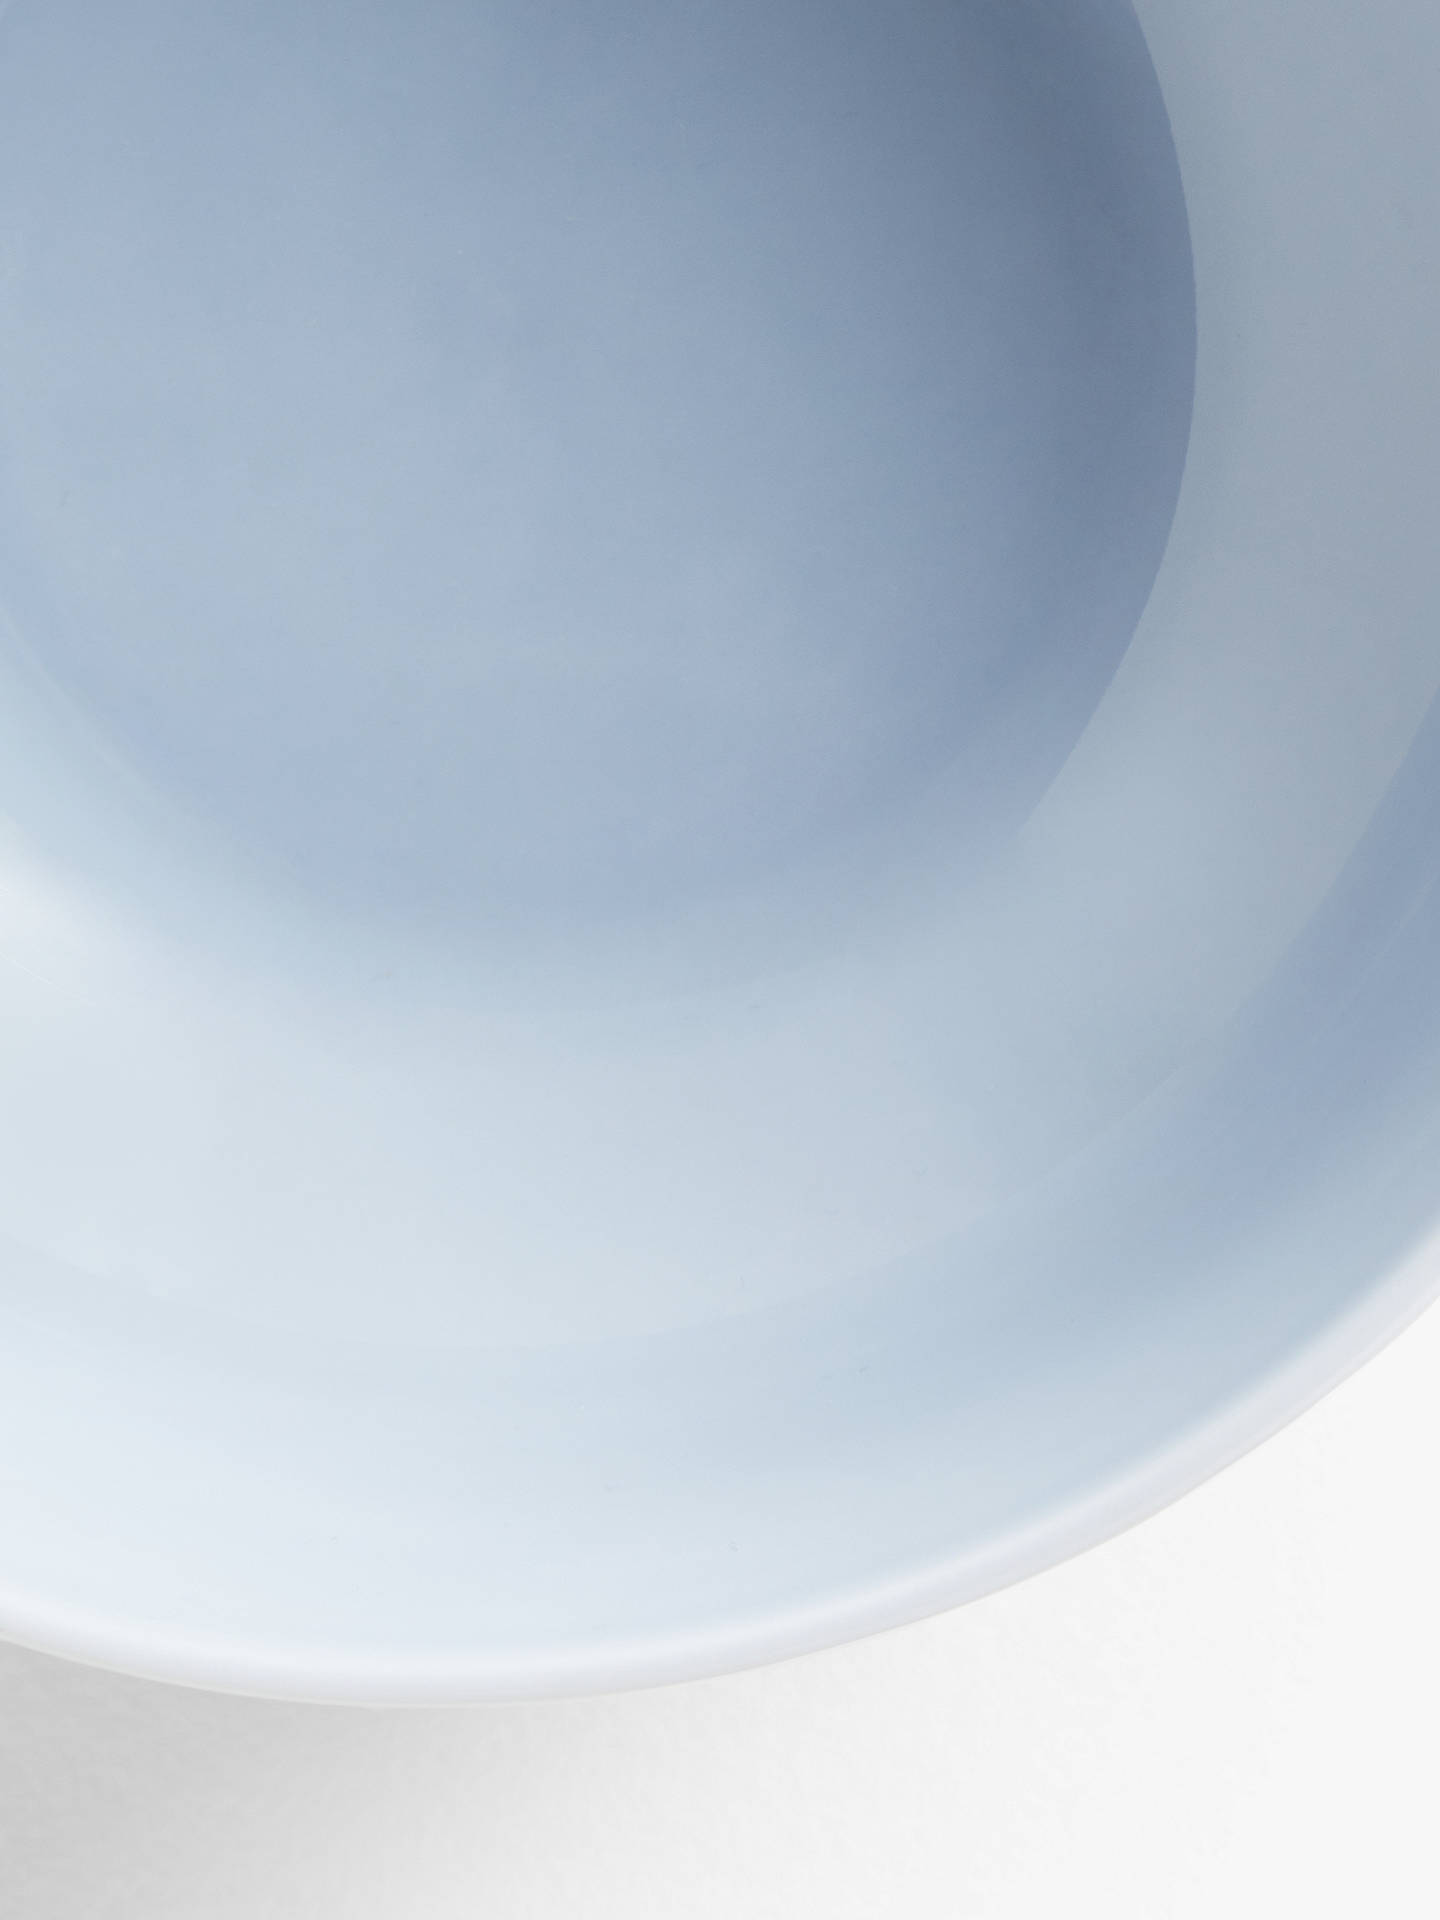 Buy Design Project by John Lewis No.098 Cereal Bowl, 16cm, Blue Online at johnlewis.com